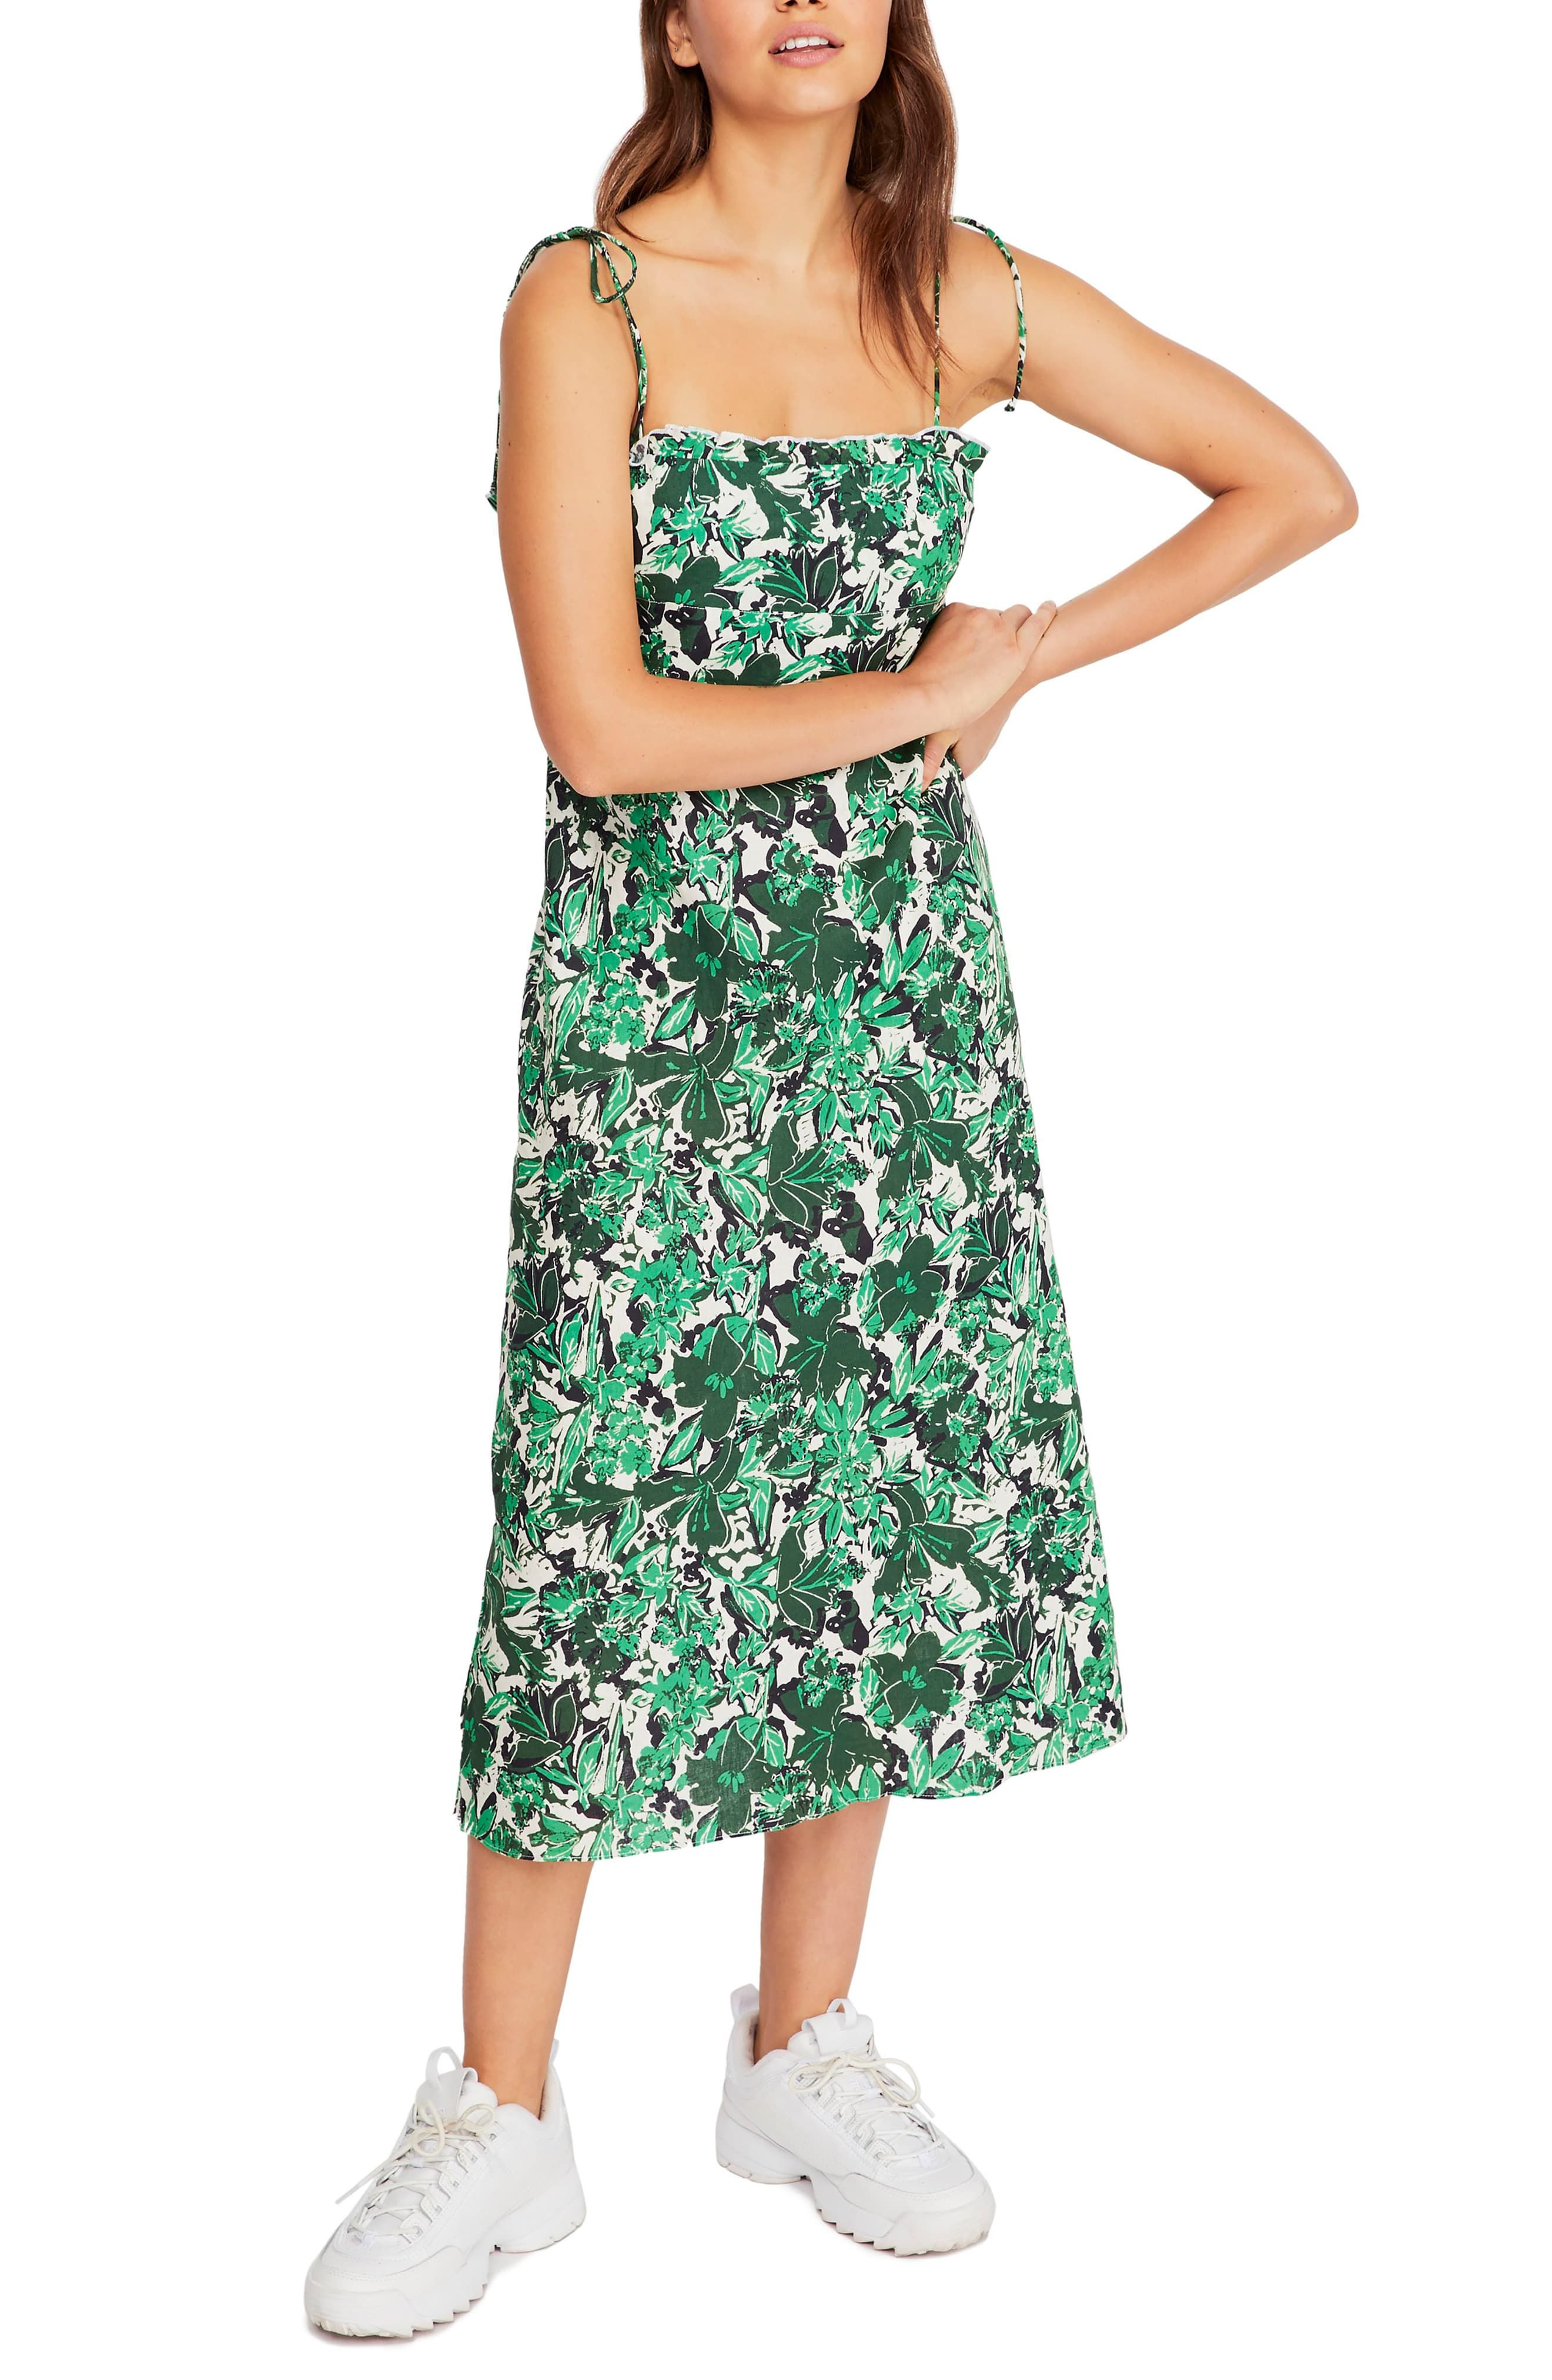 dcee24be88 Women's Free People Beach Party Tie Shoulder Midi Dress, Size 2 ...